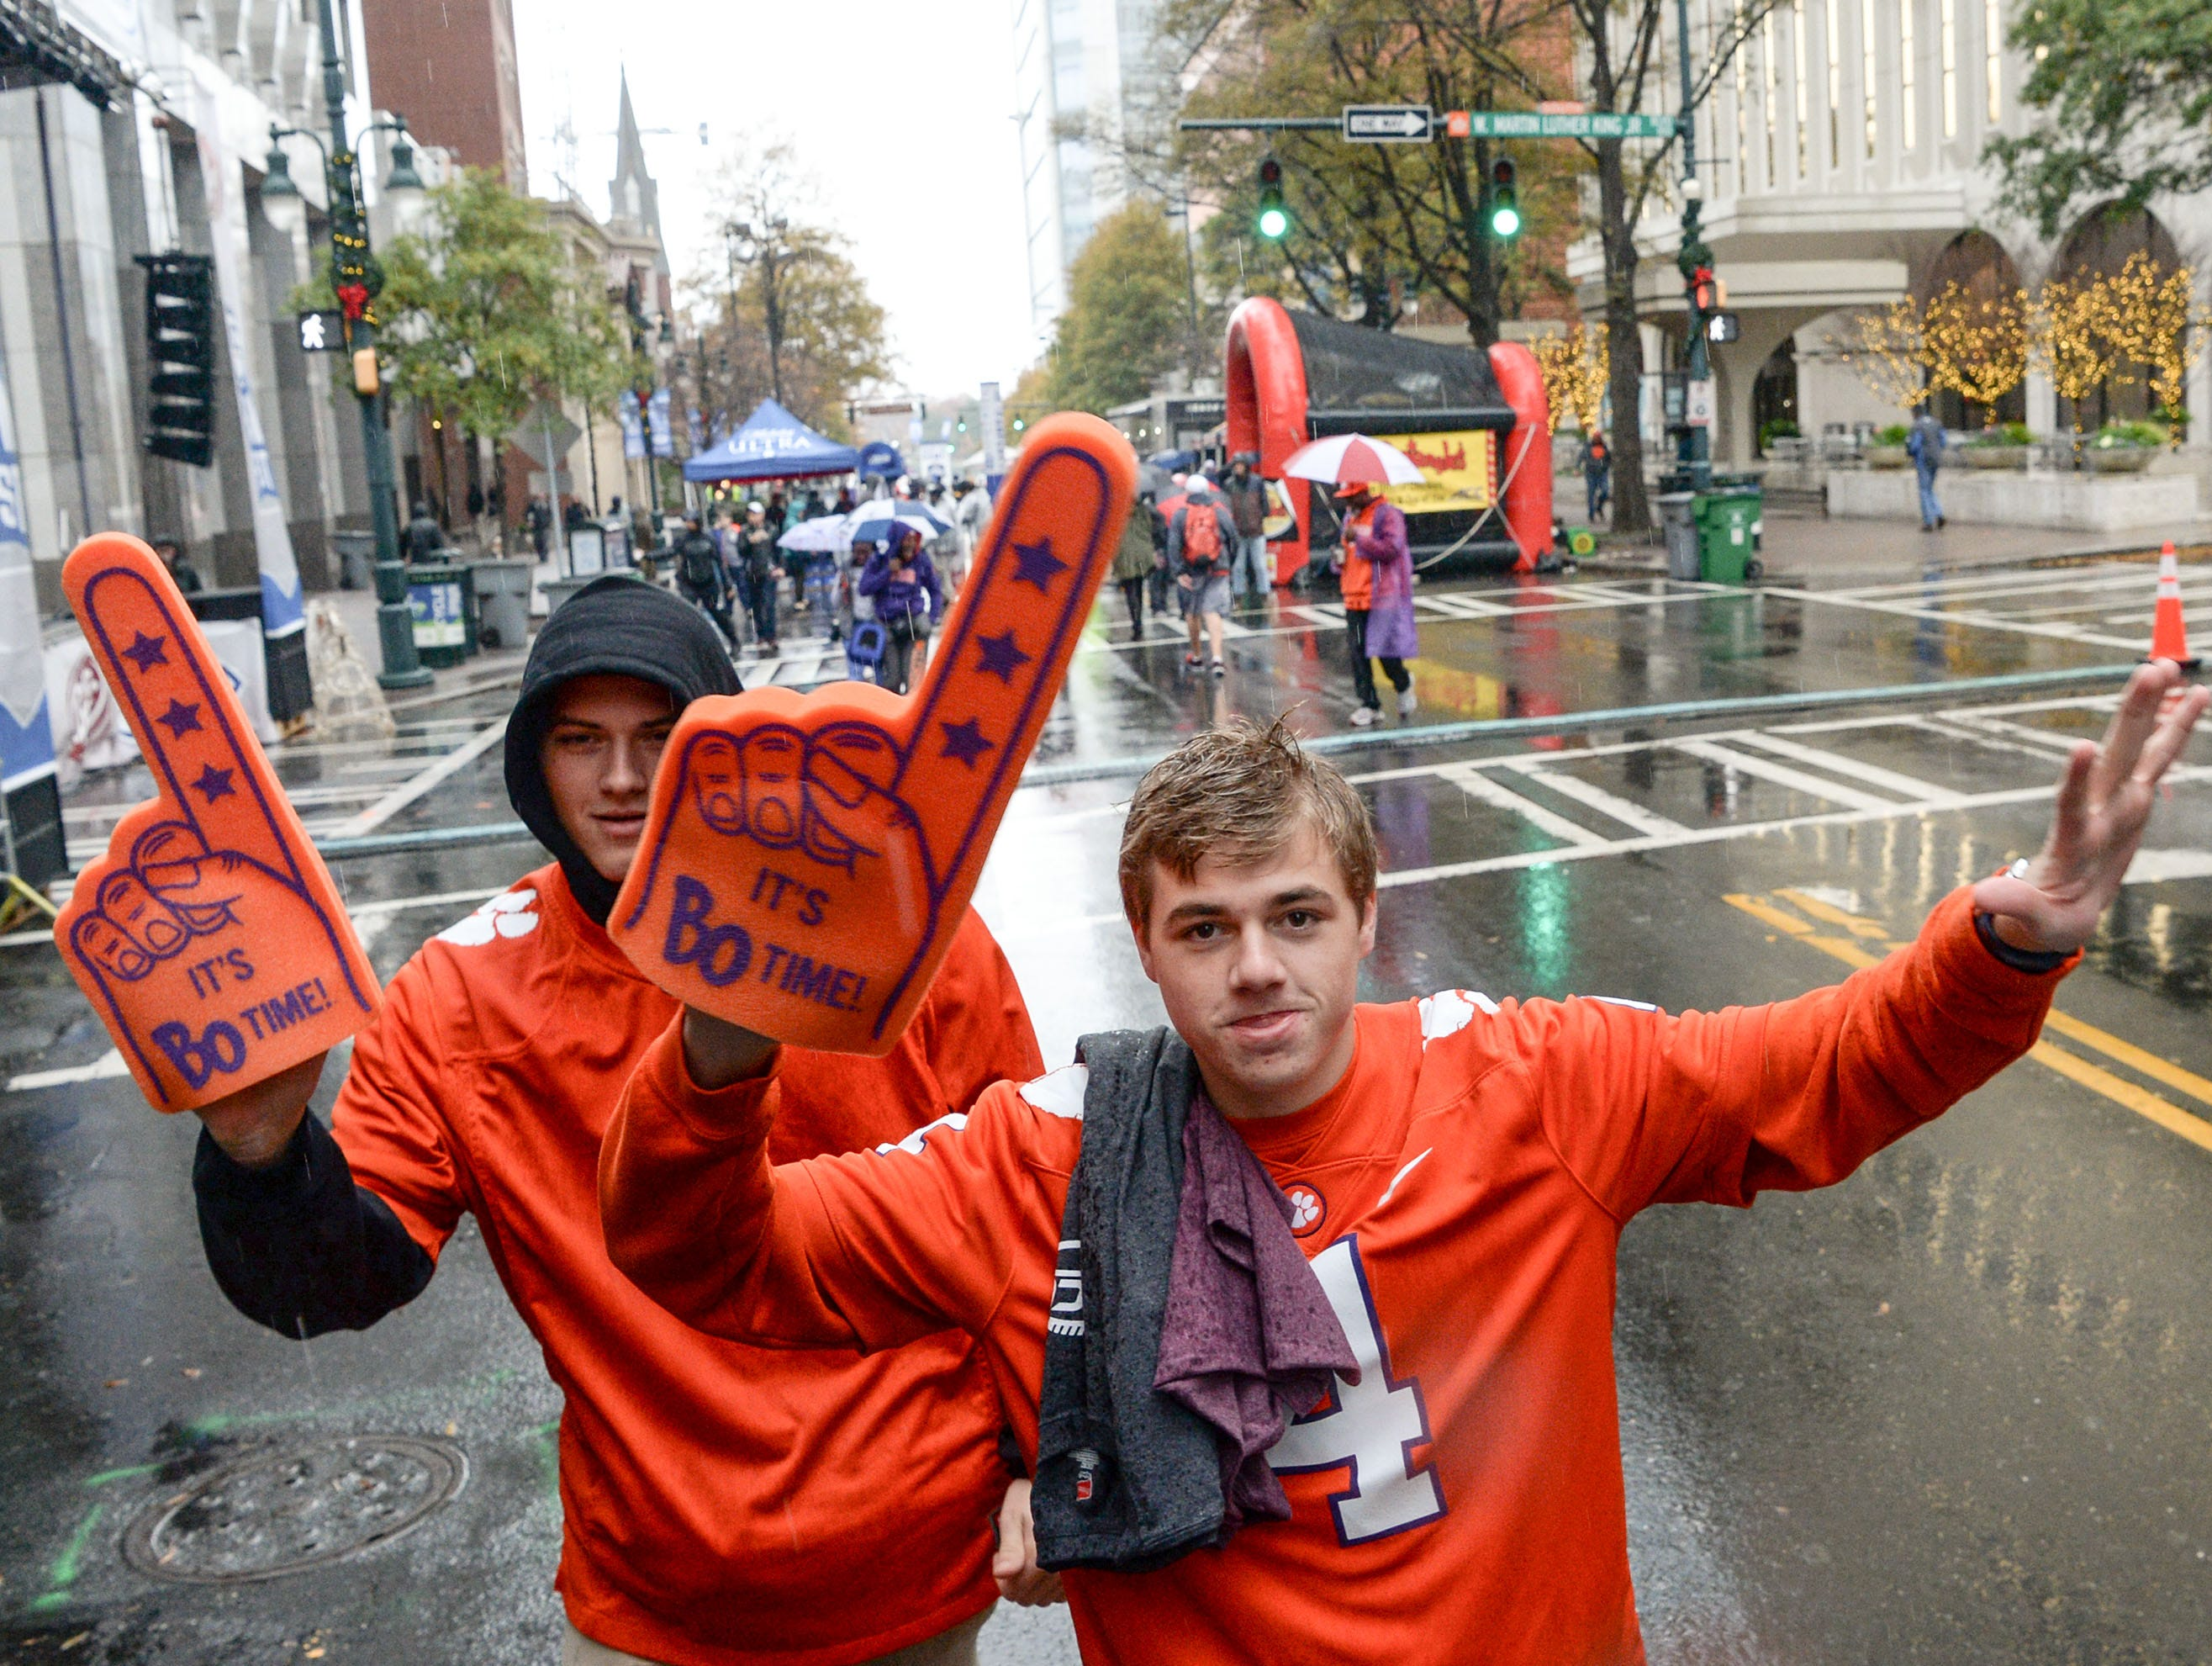 Clemson fans Carter Whaley, left, and Jake Pesickal, right, at the ACC Fan Fest in downtown Charlotte on Saturday, December 1, 2018.